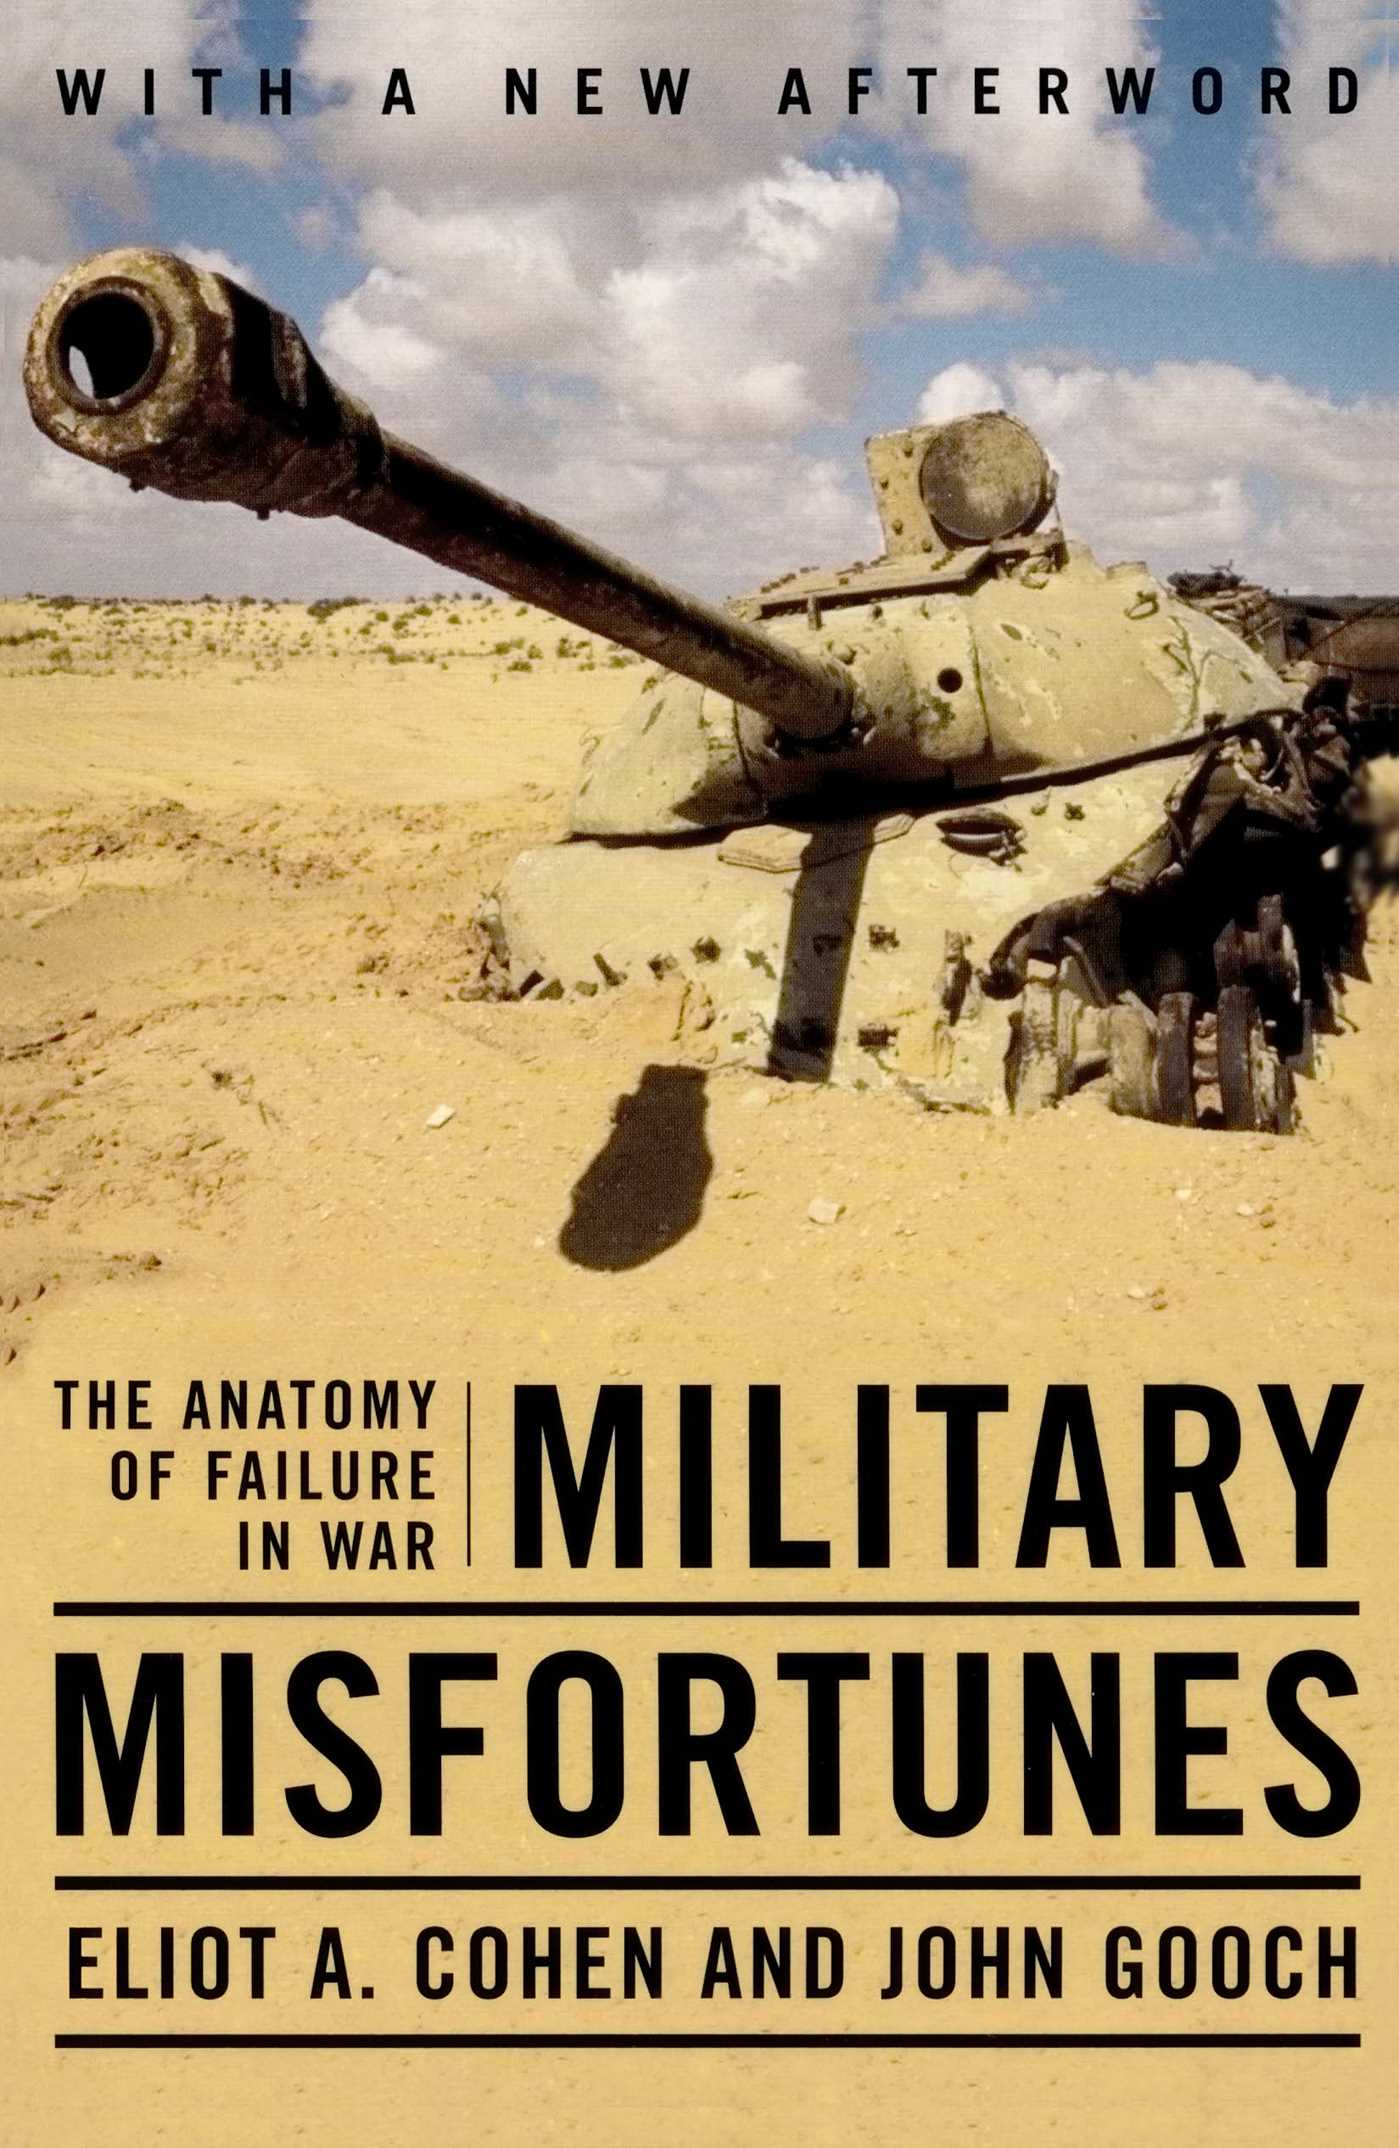 Military Misfortunes | Book by Eliot A. Cohen | Official Publisher ...